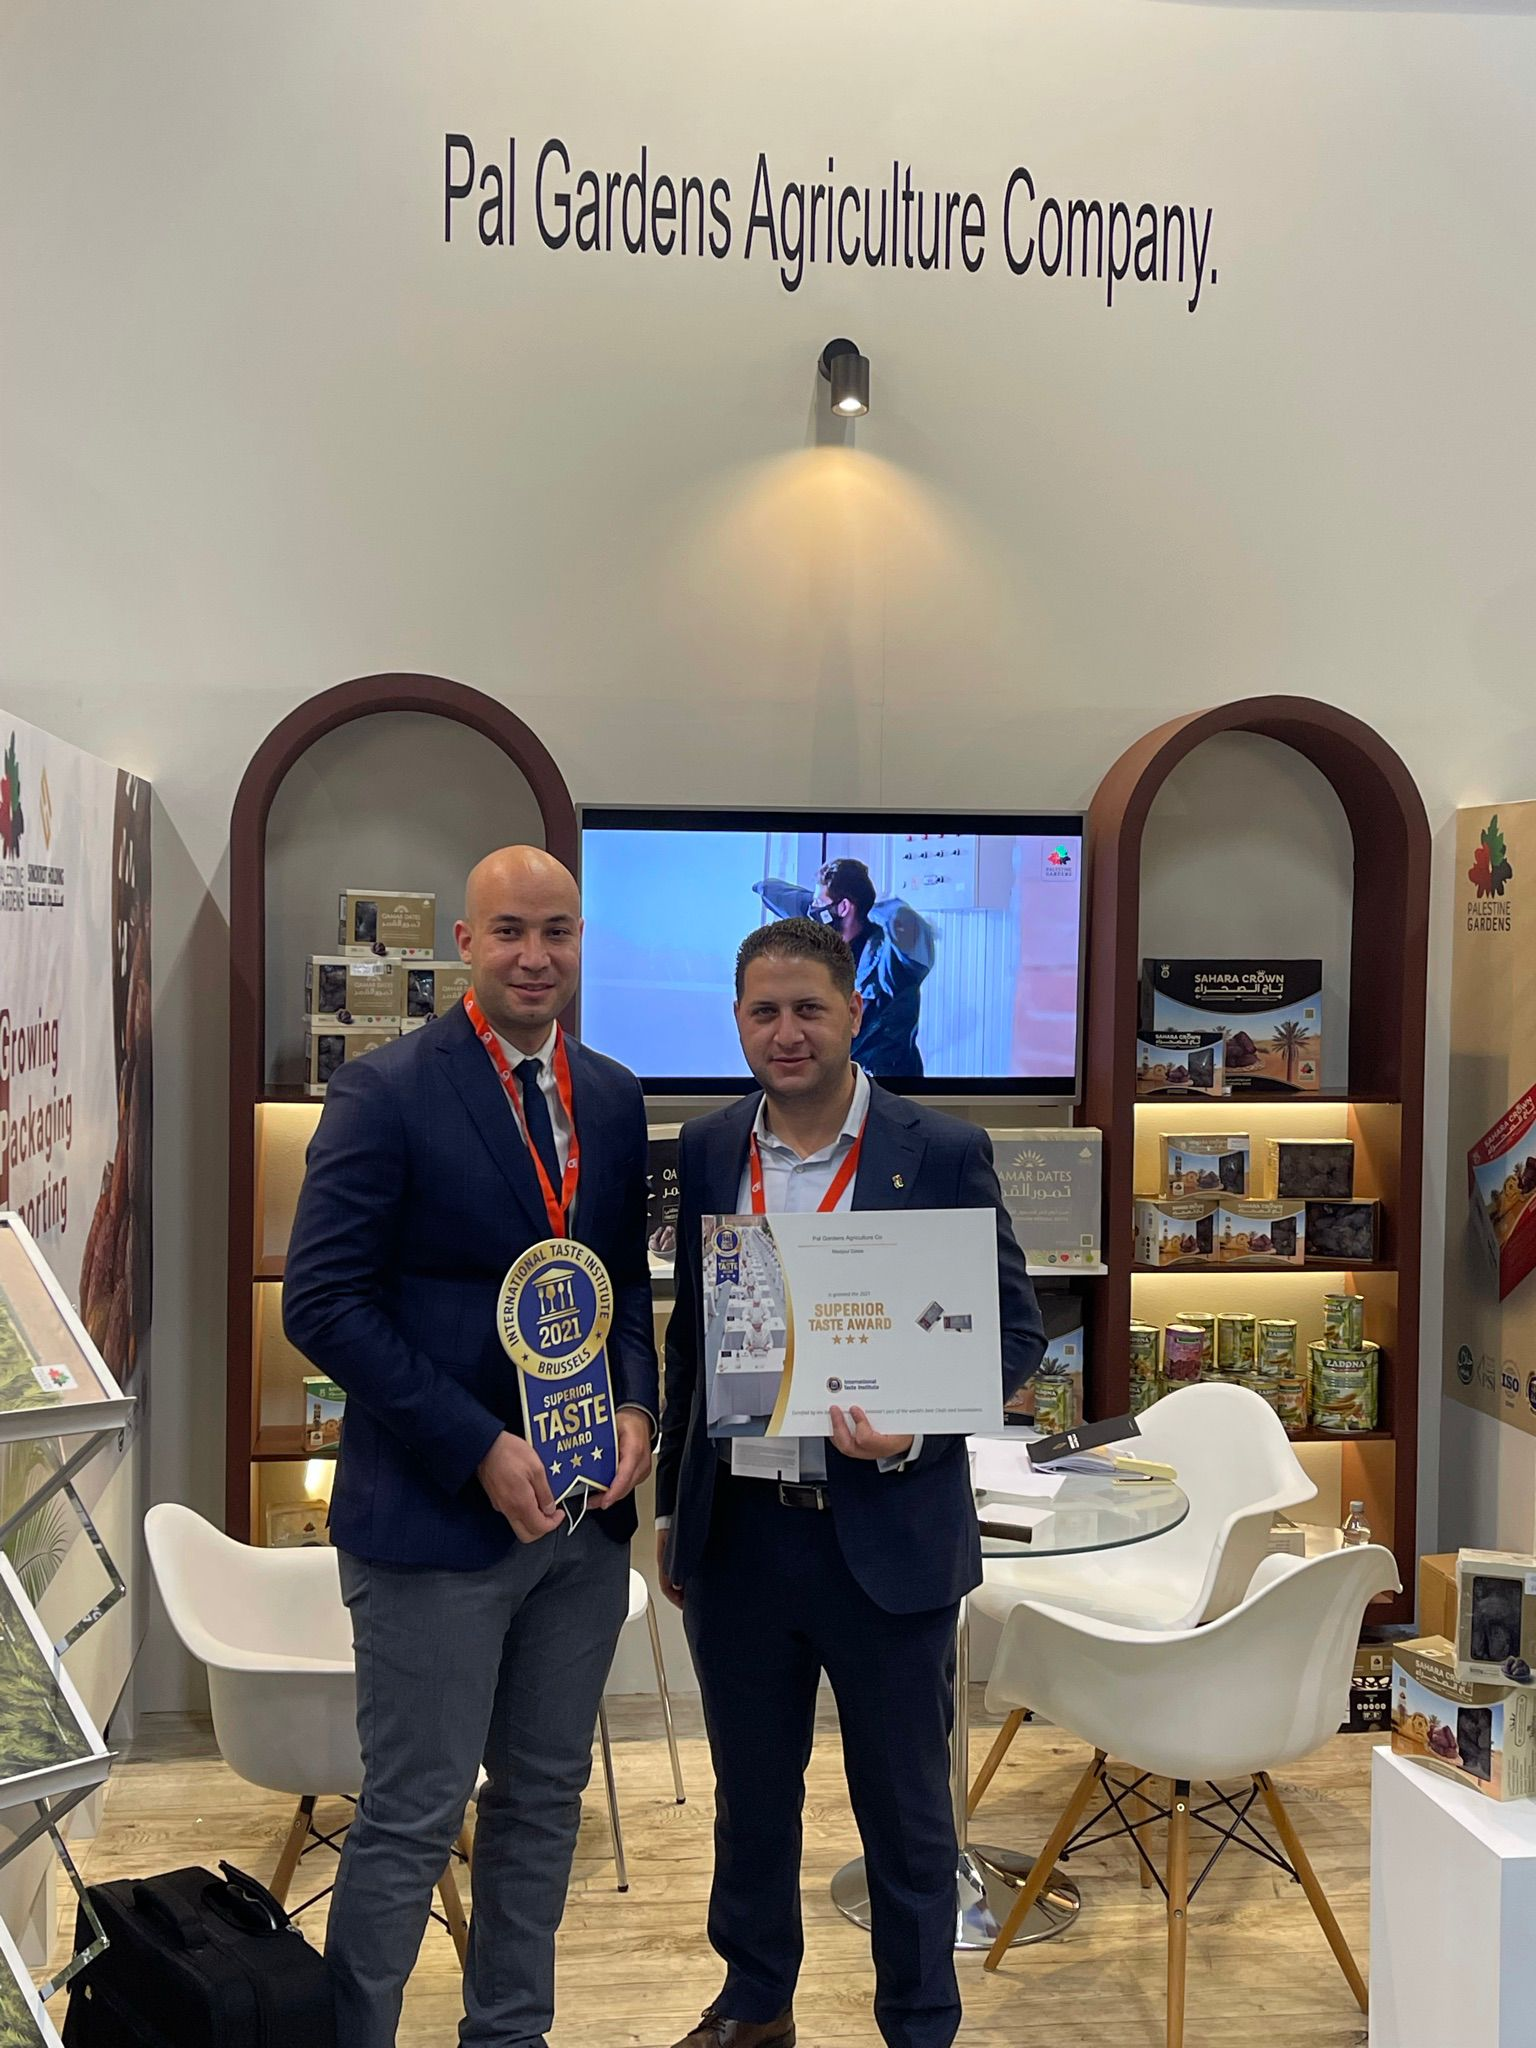 Palestine Gardens Agricultural Company participates in Anuga 2021- International Food Industry Trade Fair in Germany